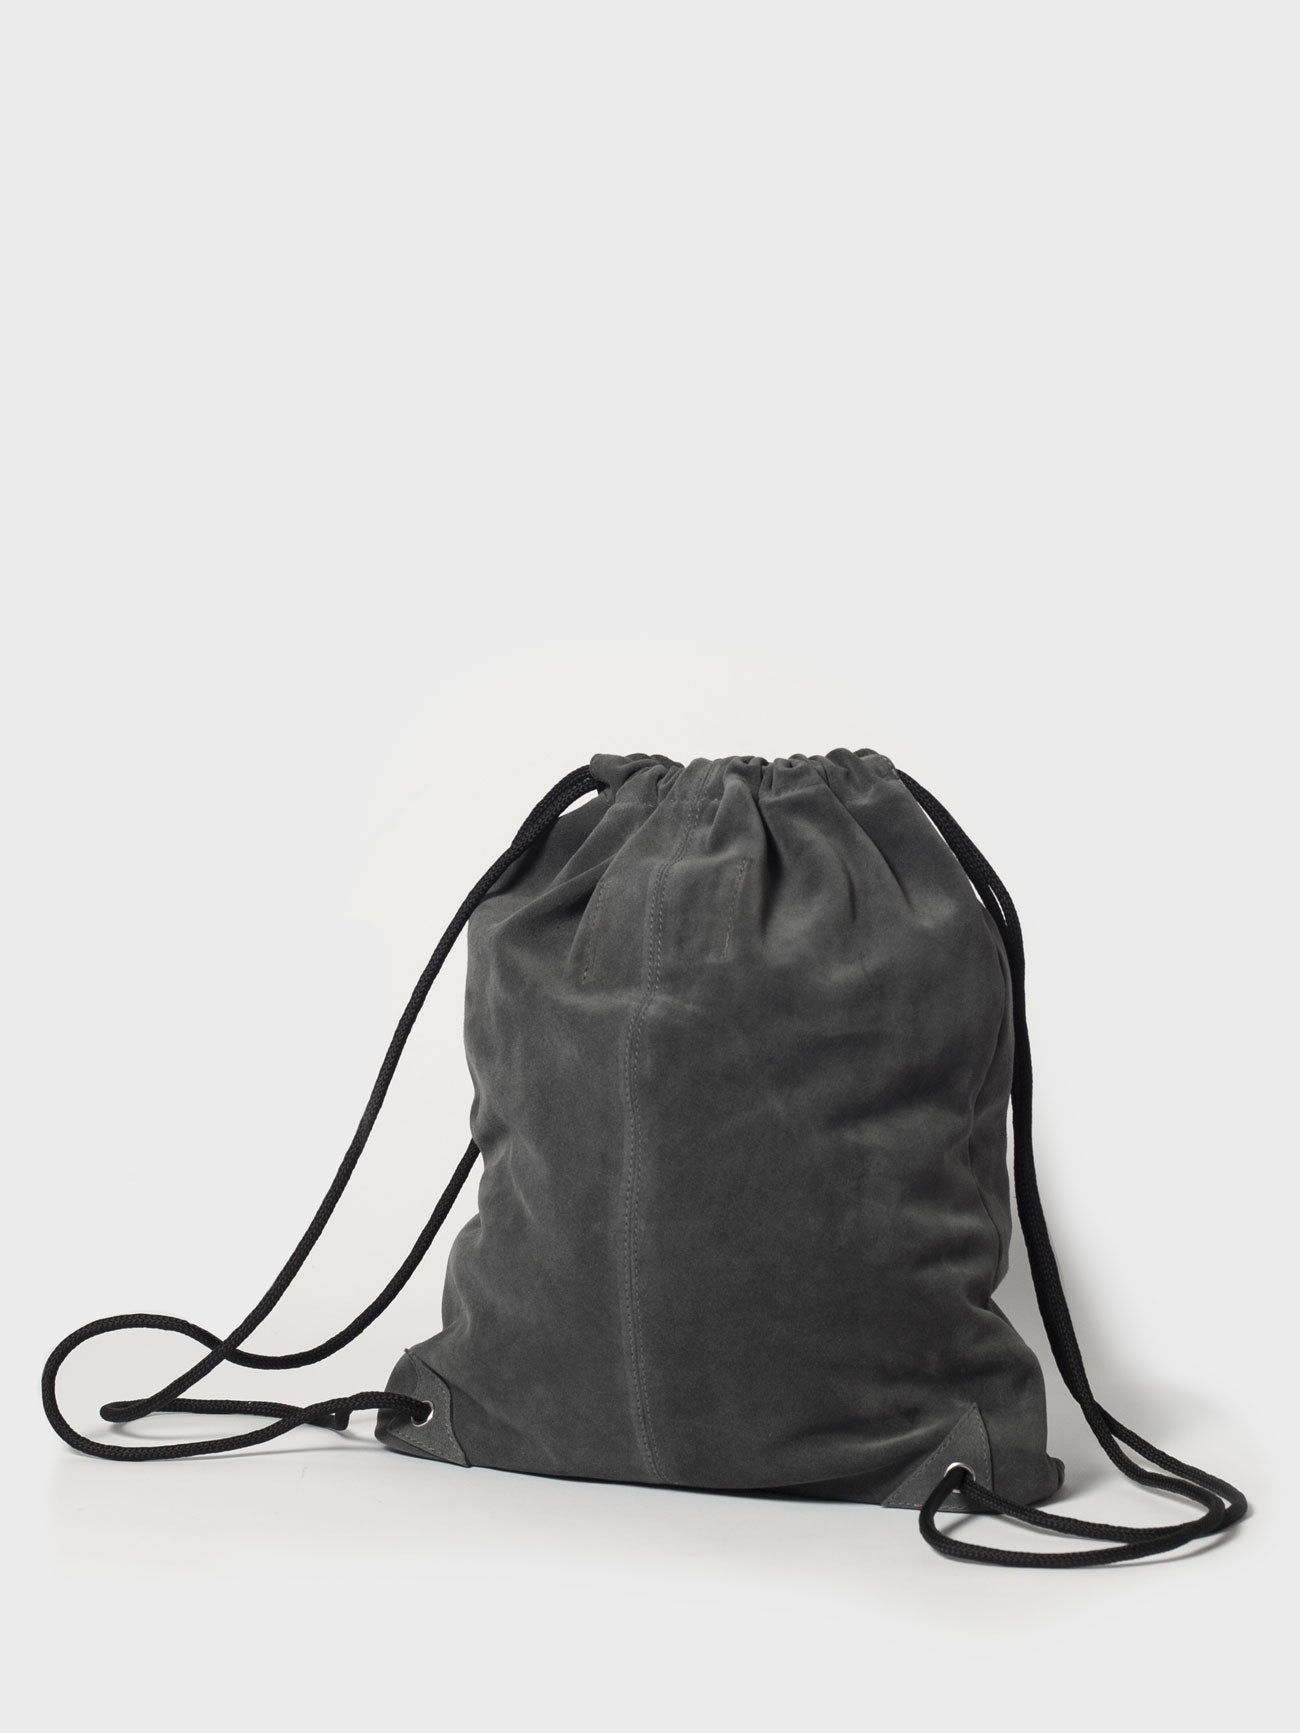 PARK Gymbag GB02 Grey